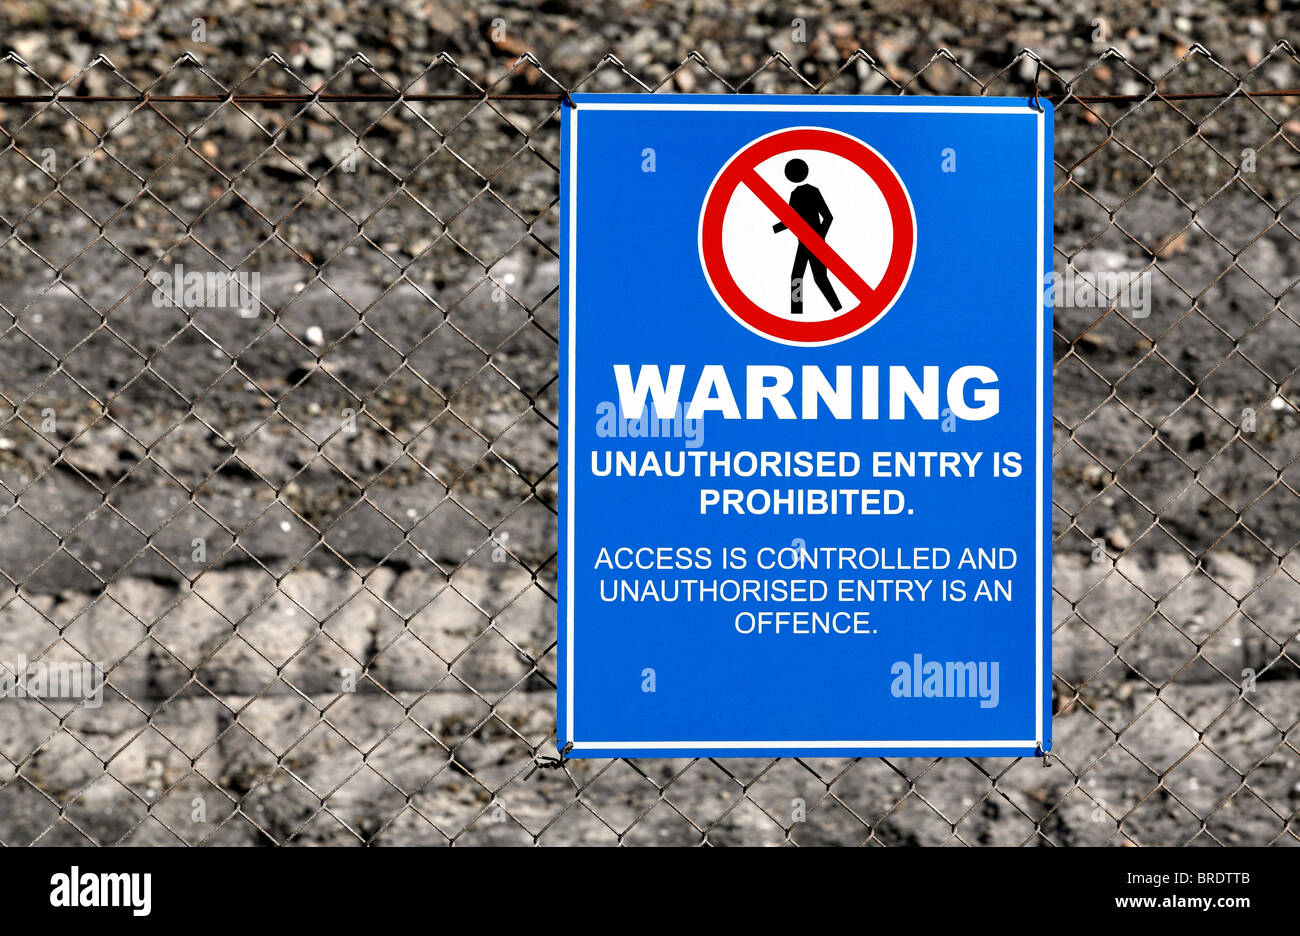 A warning sign on a wire fence with blue background and a black figure of a person with a red slashed circle - Stock Image